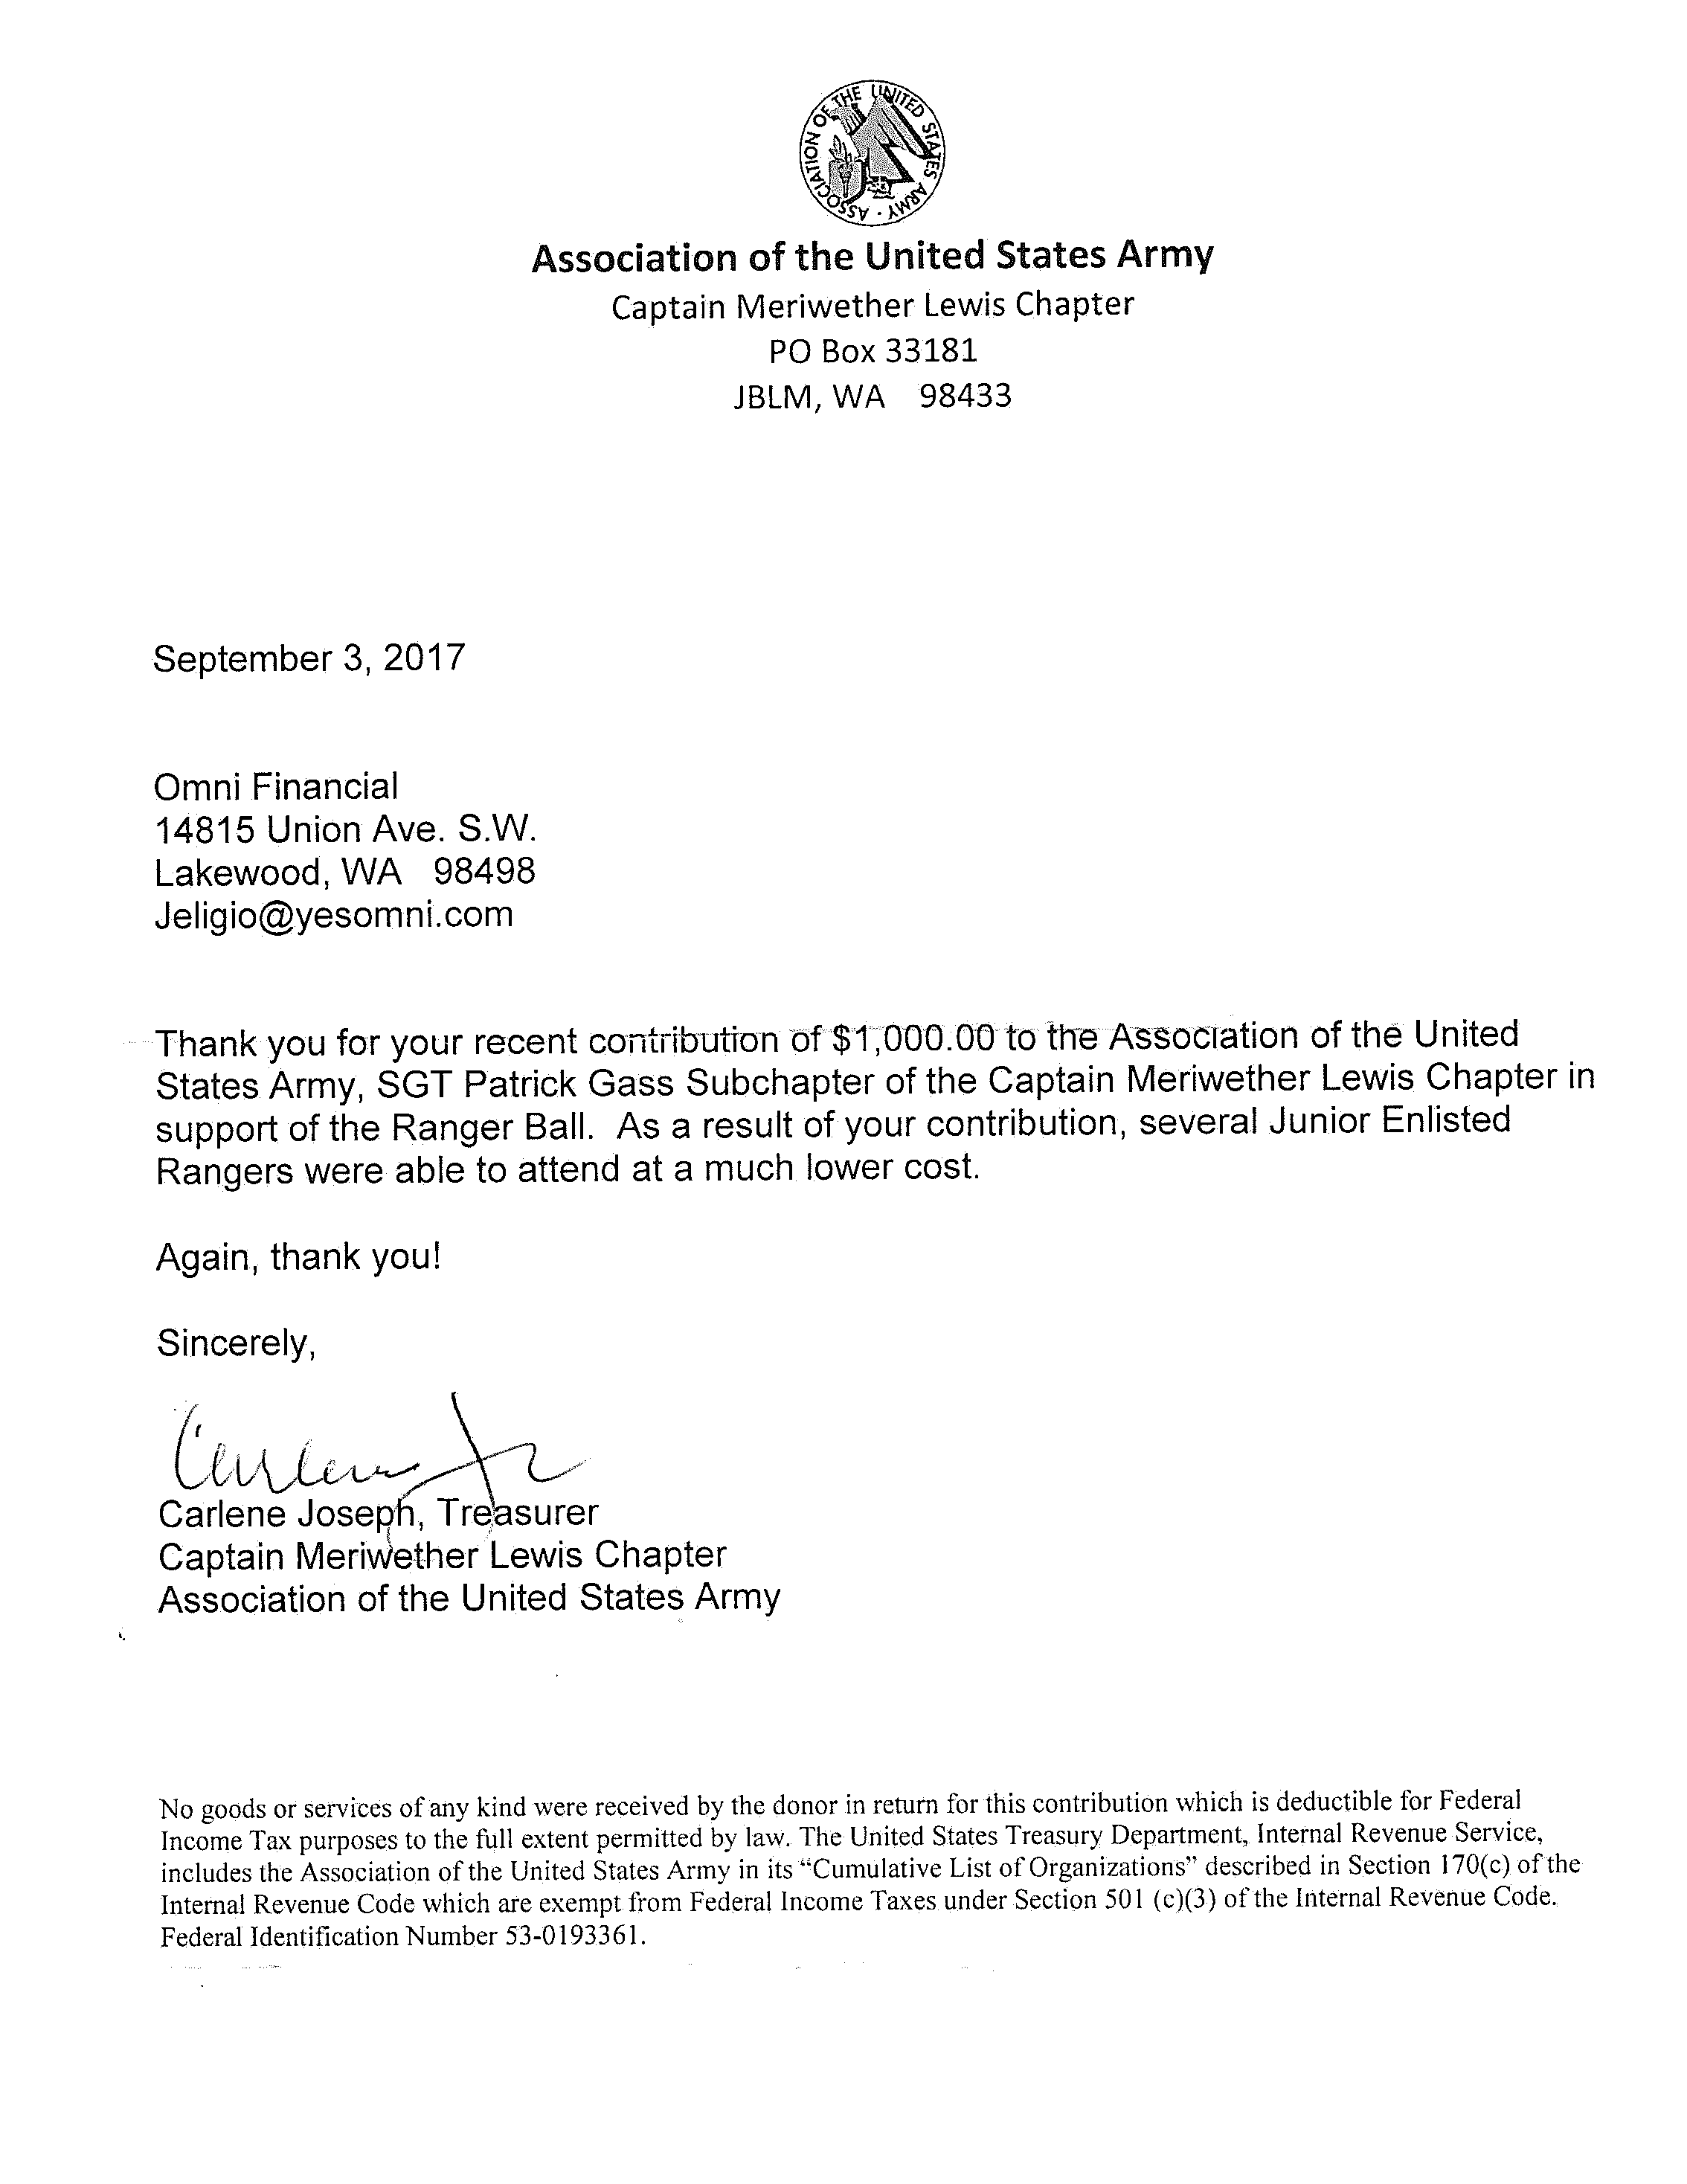 Thank You For Your Military Service Letter Sample  Cover Letter